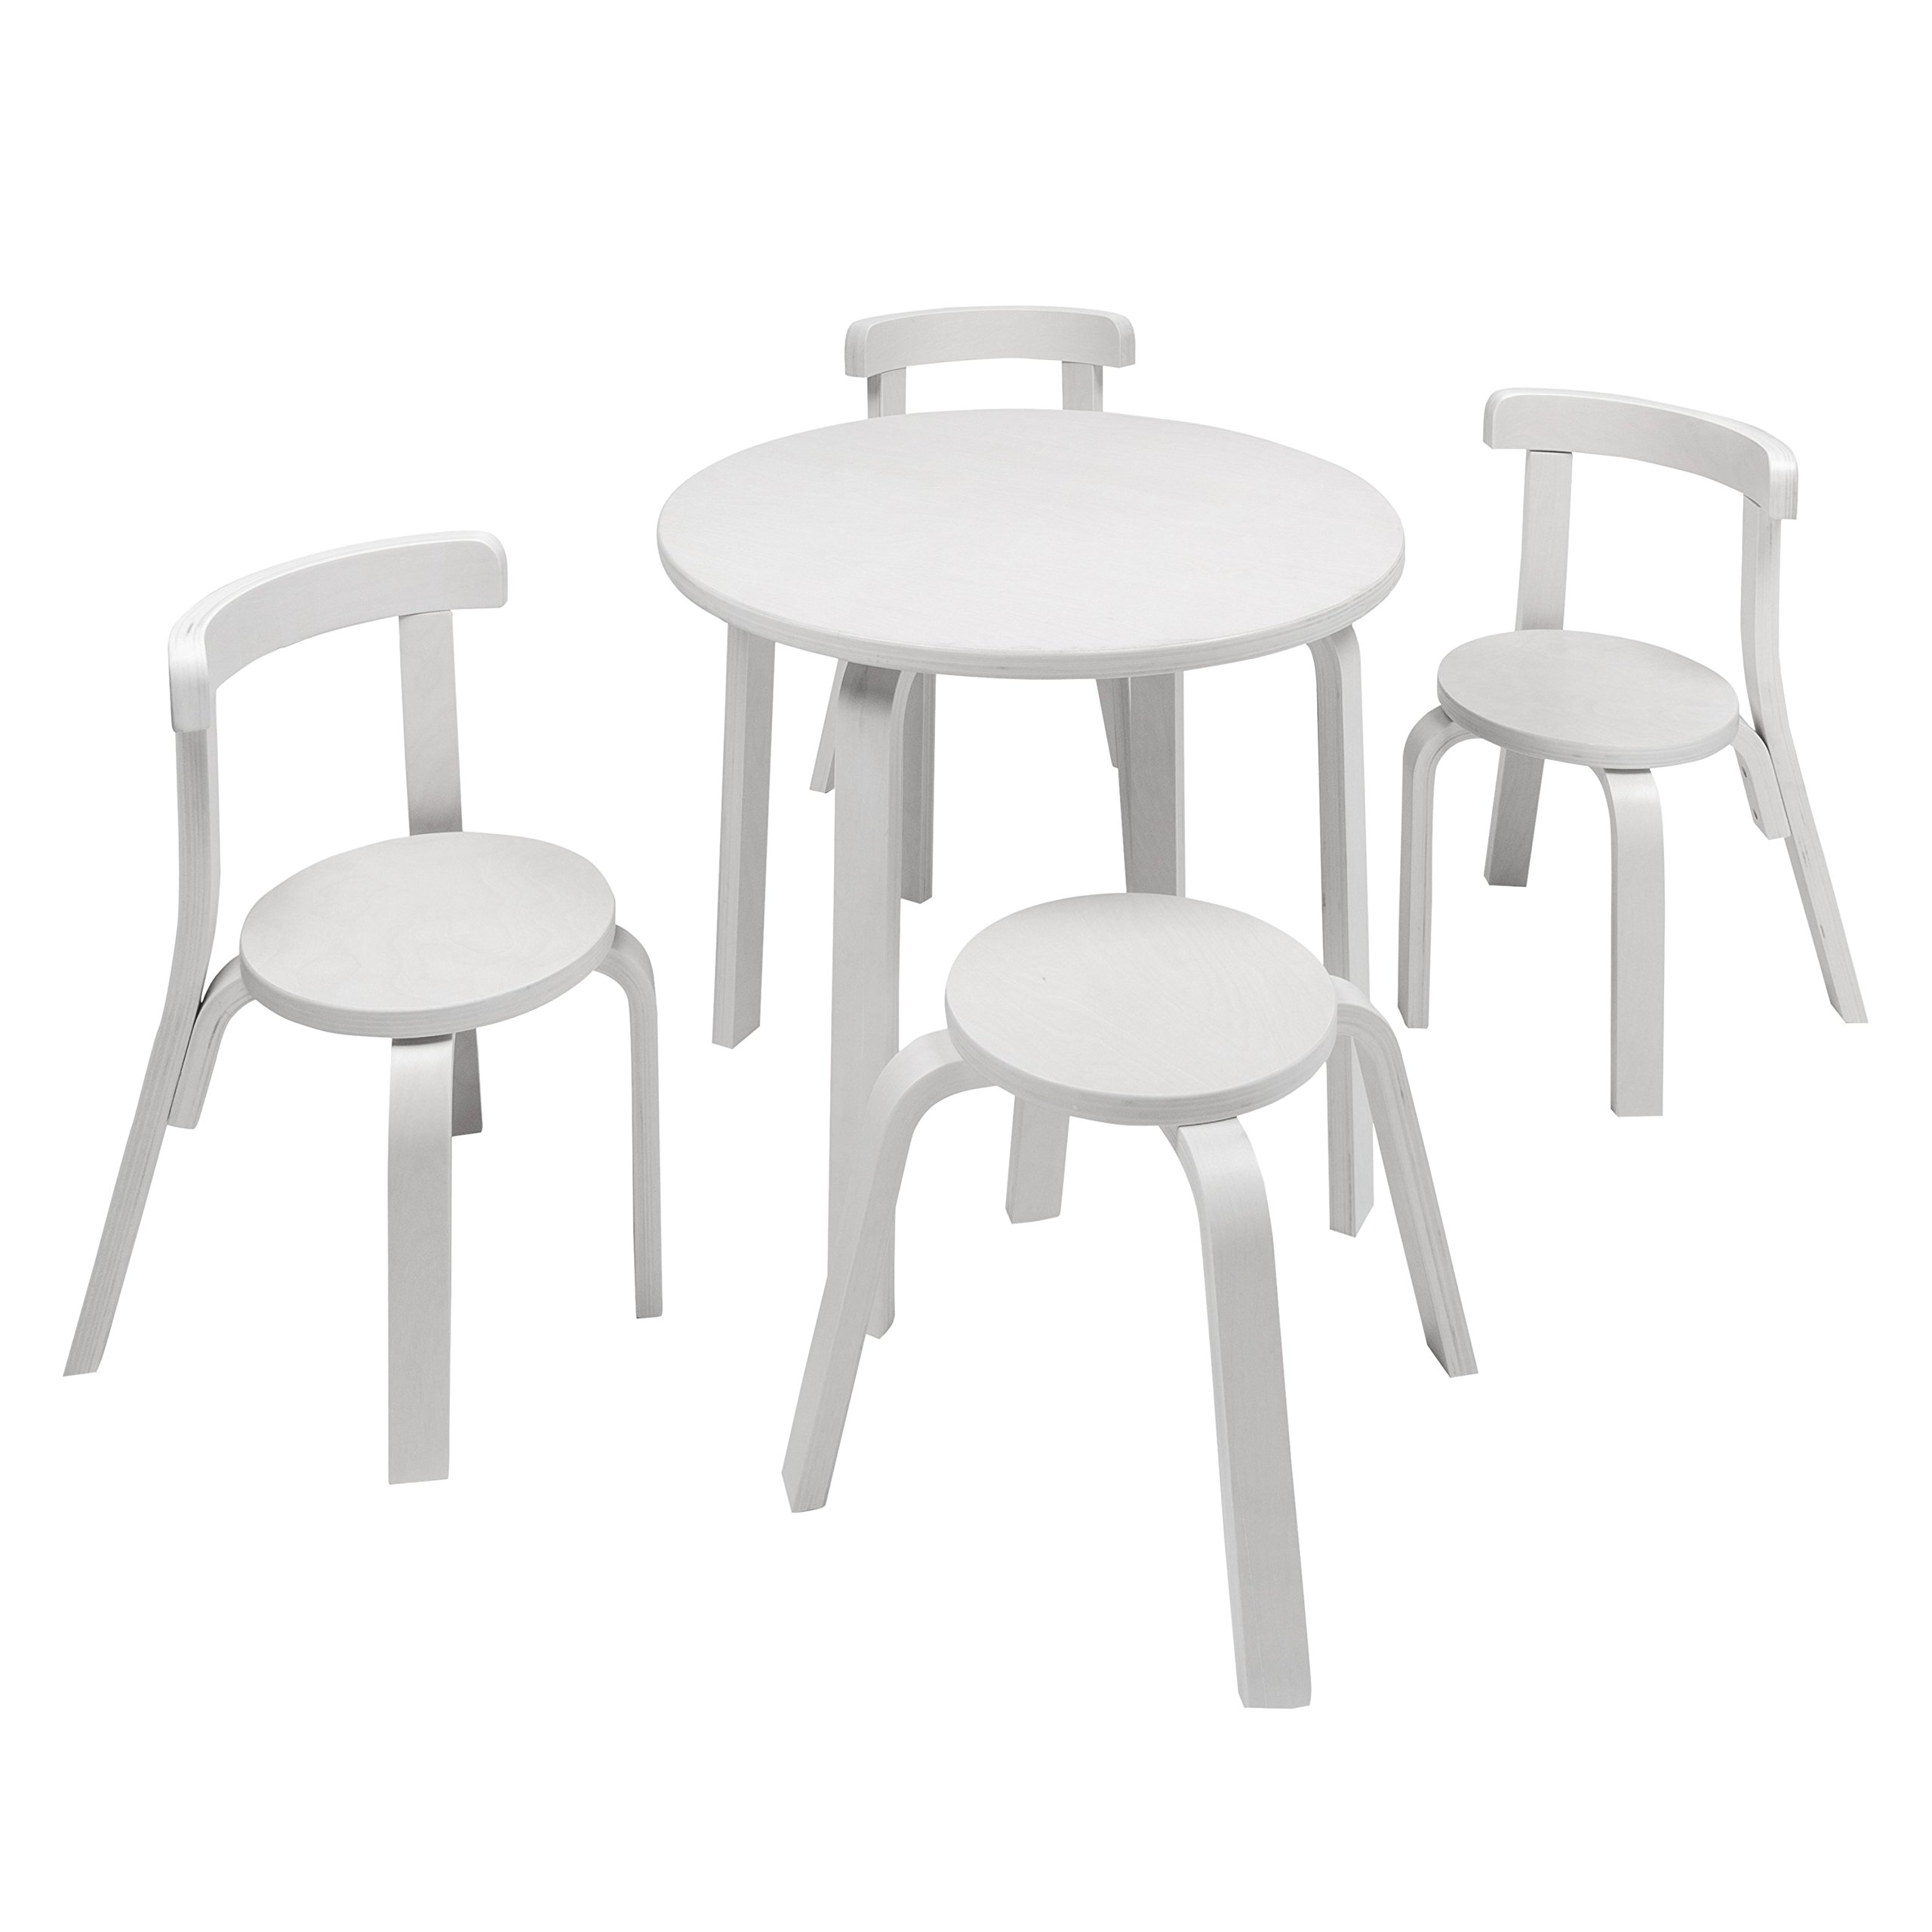 Kids Table and Chair Set - Svan Play with Me Toddler Table Set with 3 Chairs and Stool - 100% Wood (White) by Svan